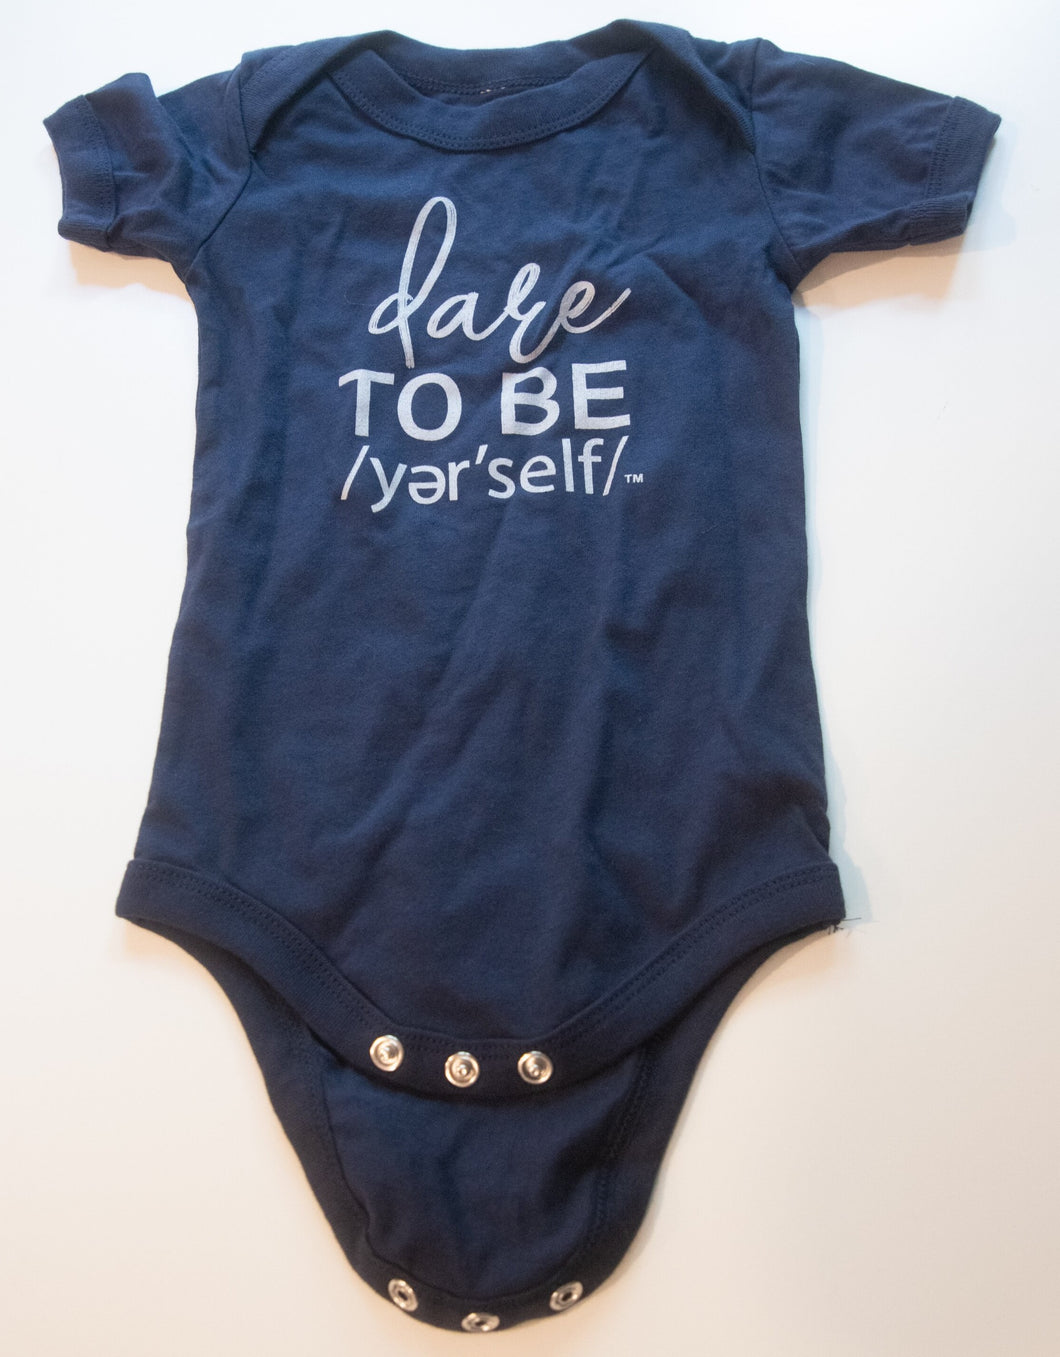 NAVY BABY ONESIE GRAY WRITING DTB YER'SELF